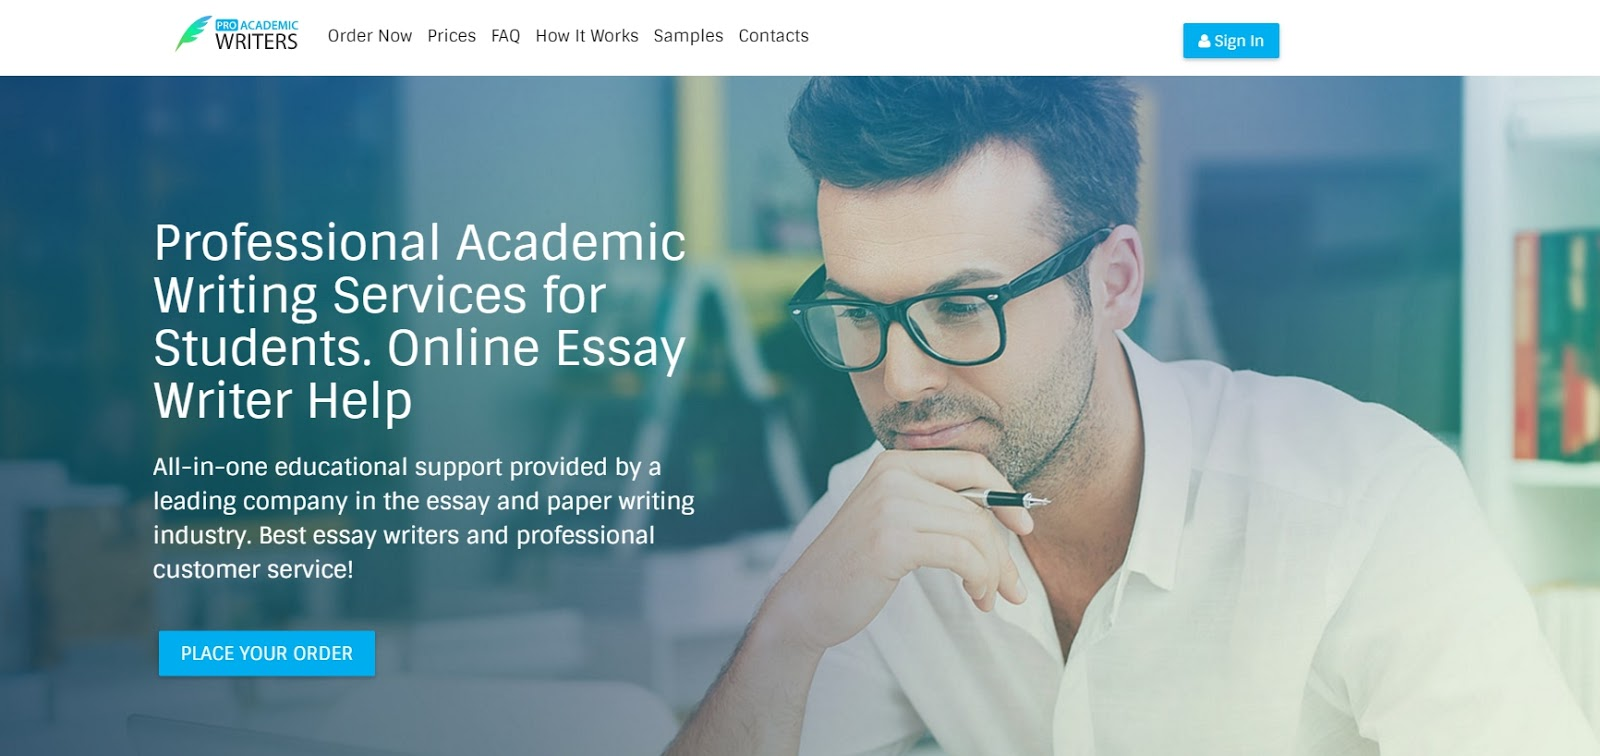 Essay help pros reviews